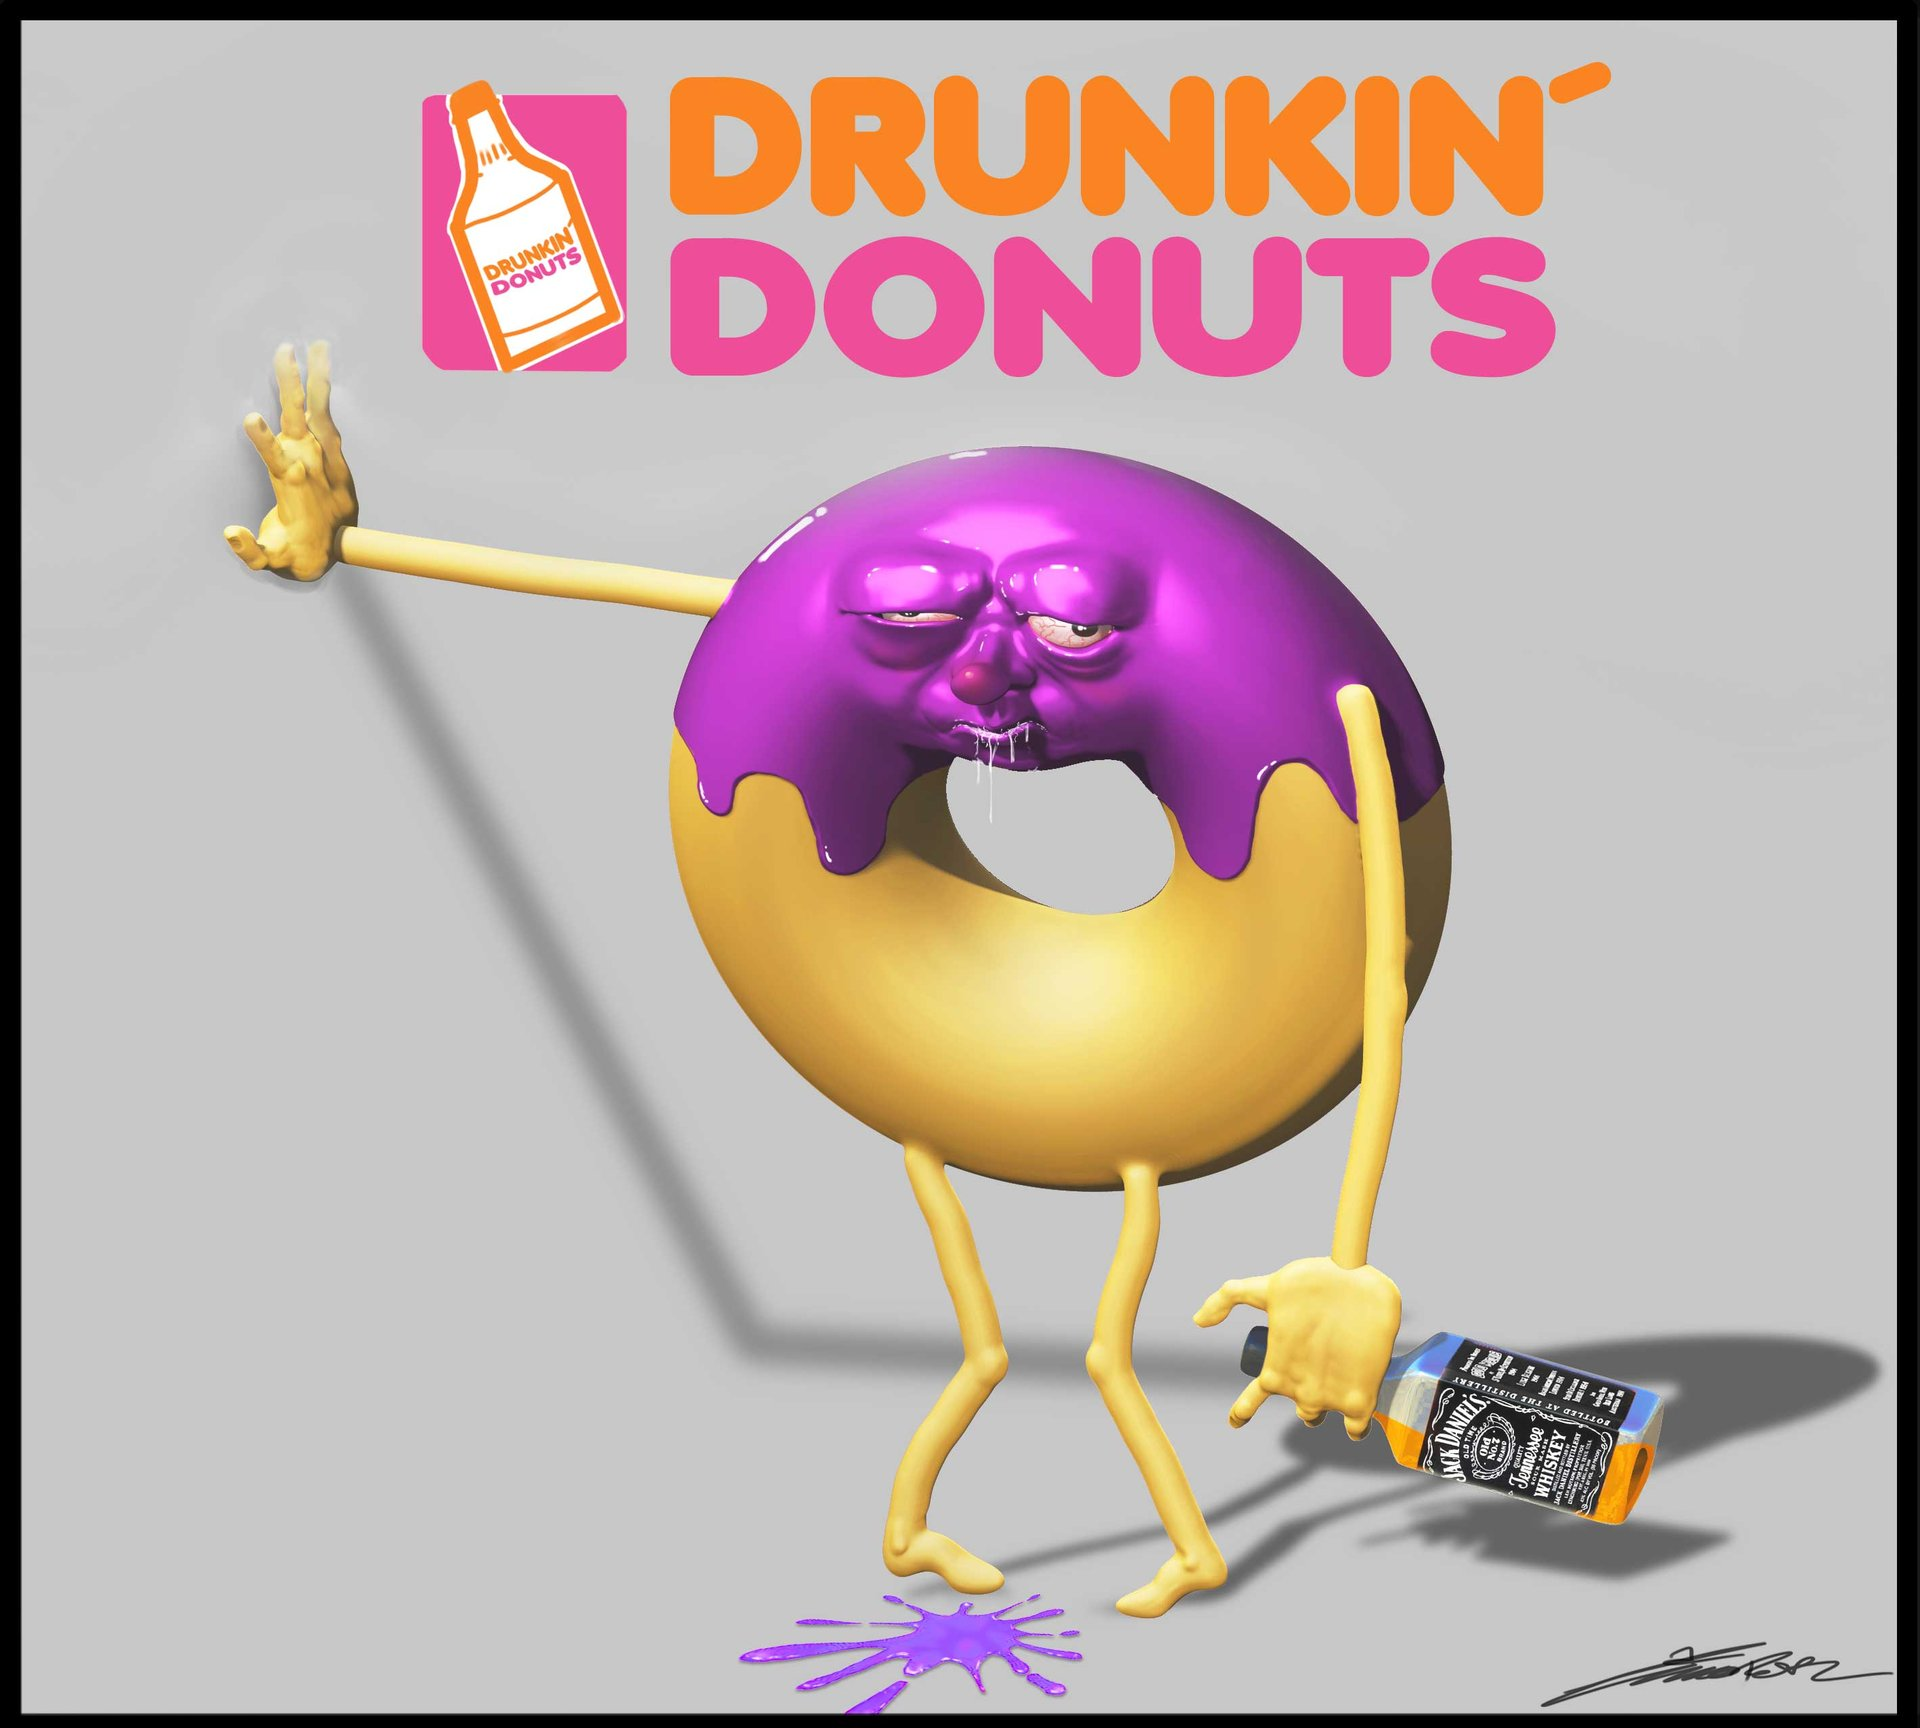 Timo peter drunkin donuts 02